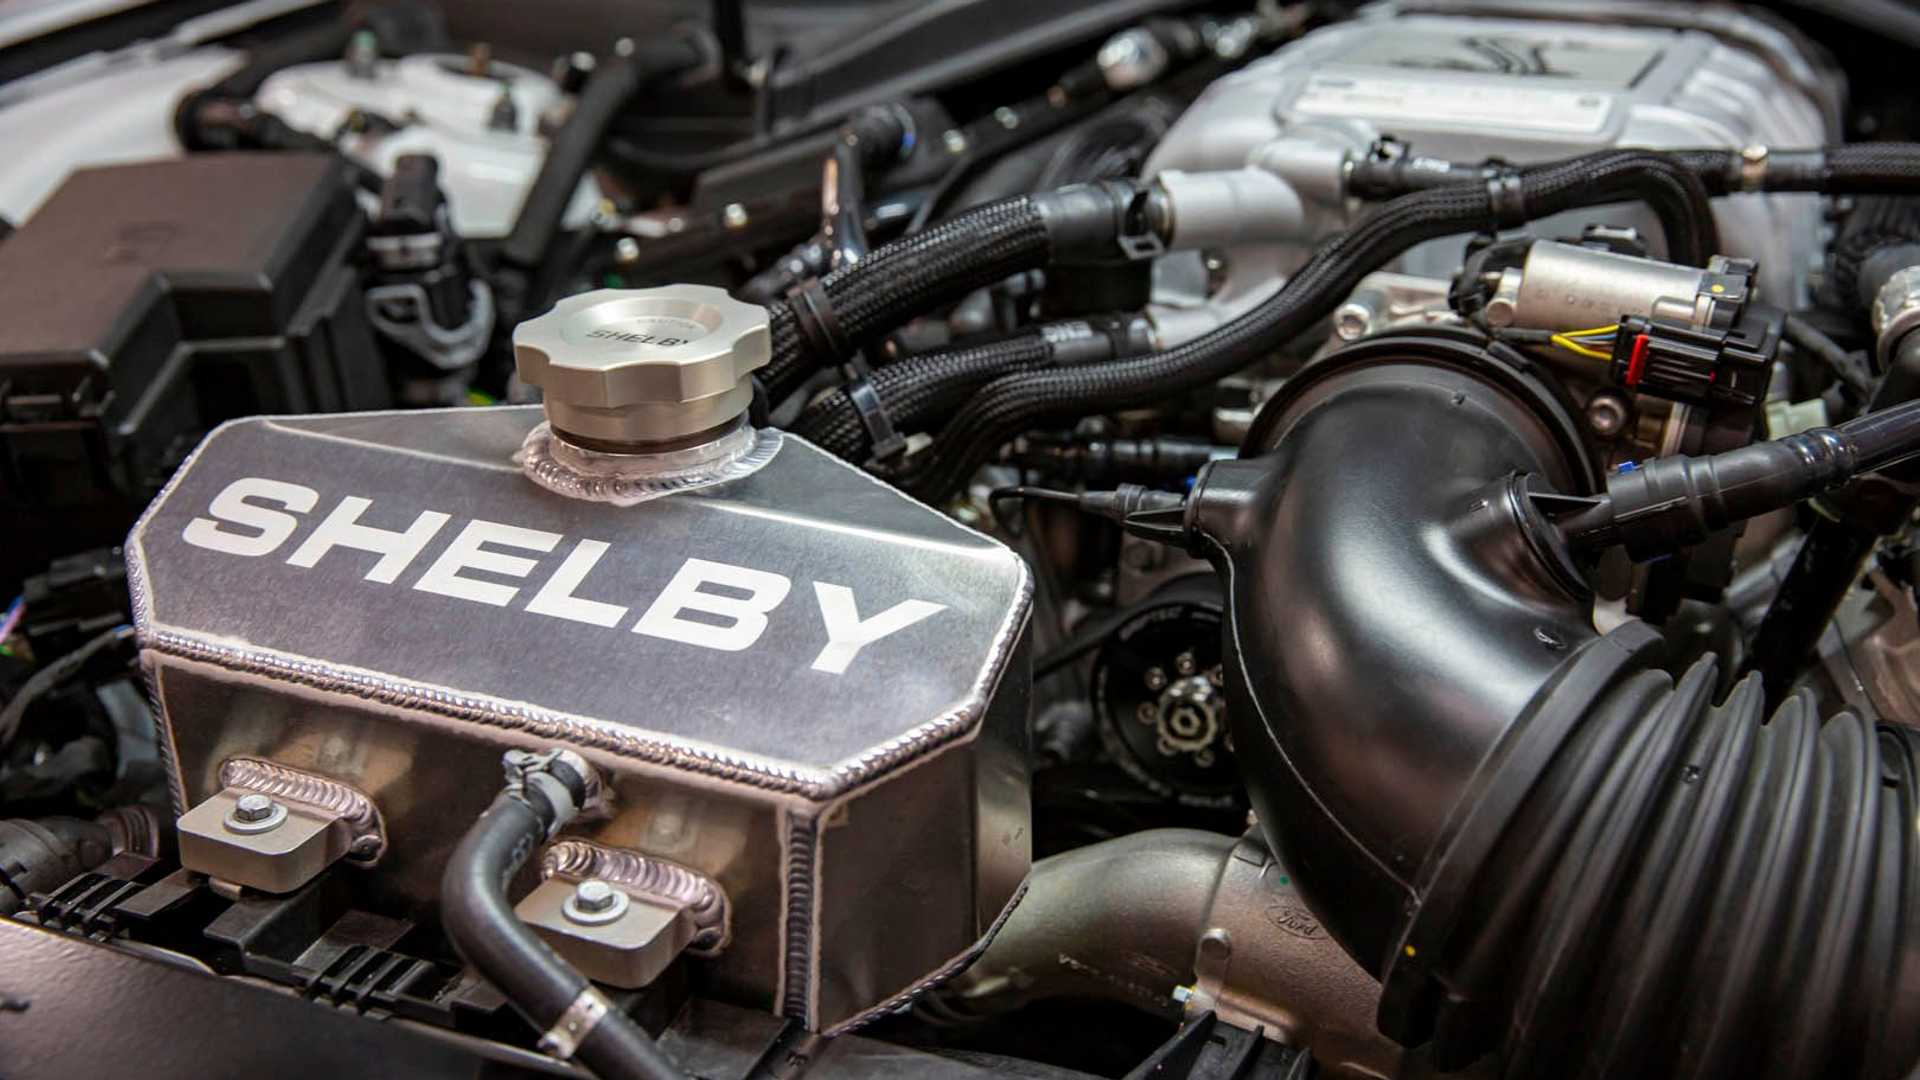 ford-mustang-shelby-gt500se-shelby-america-signature-edition-engine